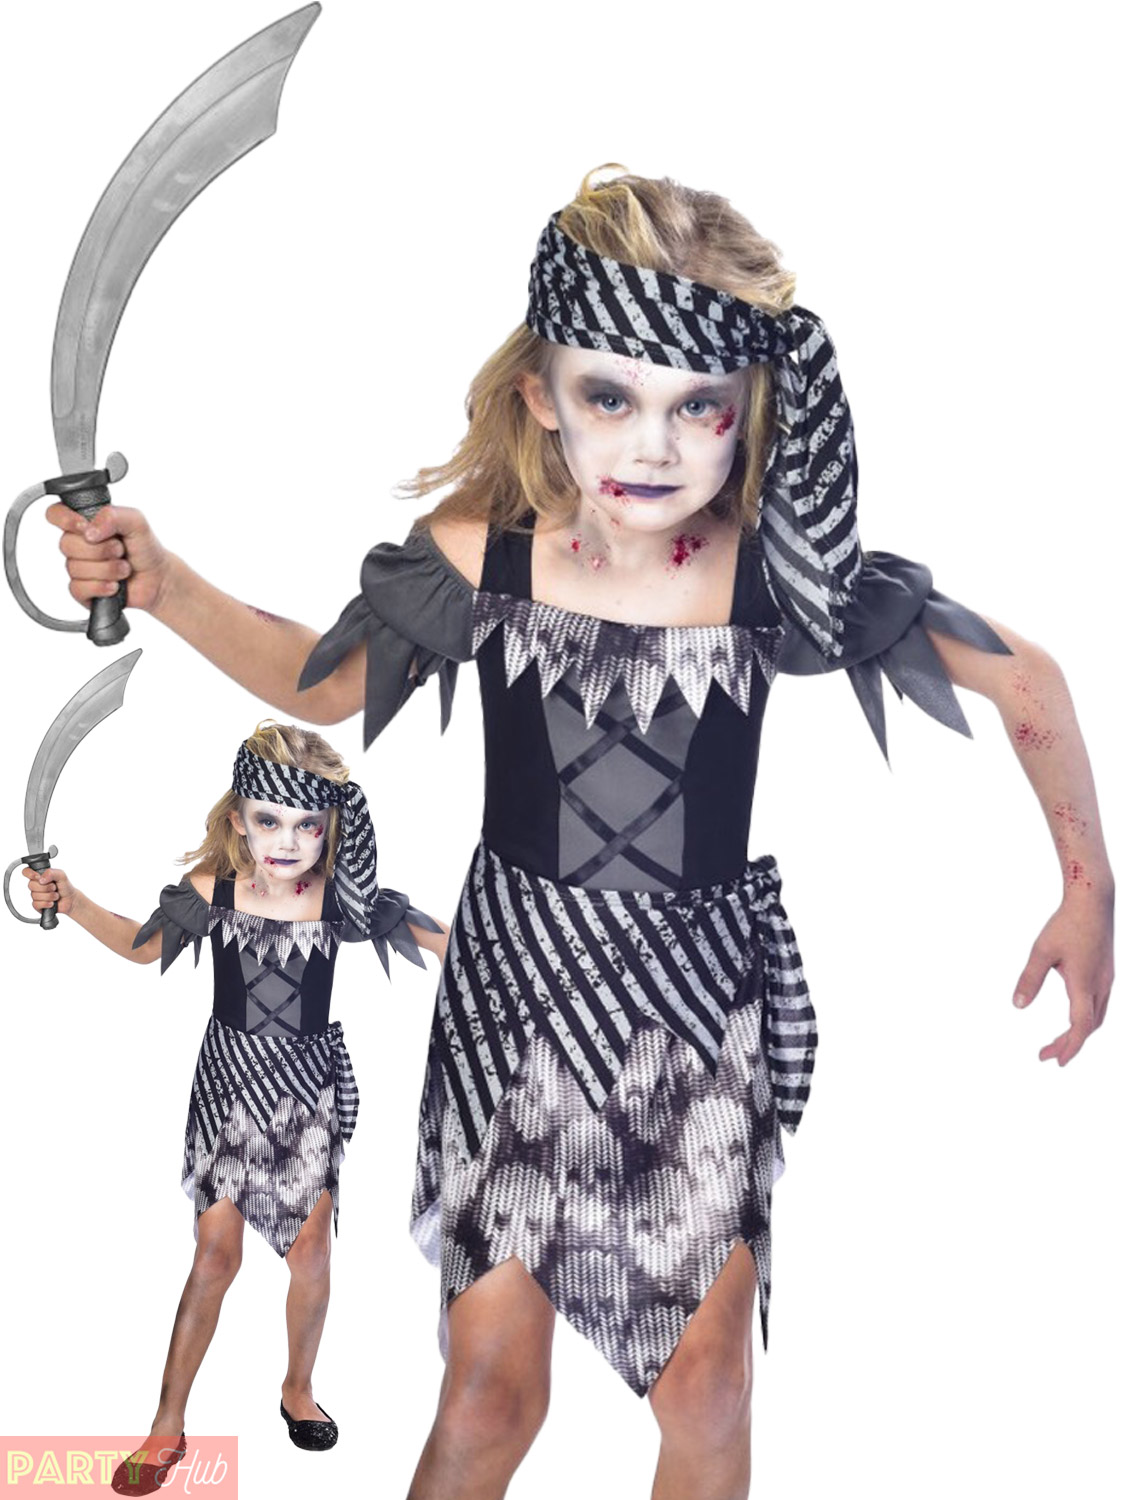 Halloween Costumes For Kids Girls Zombie.Details About Ll Girls Zombie Pirate Costume Ll Childs Halloween Fancy Dress Kids Horr